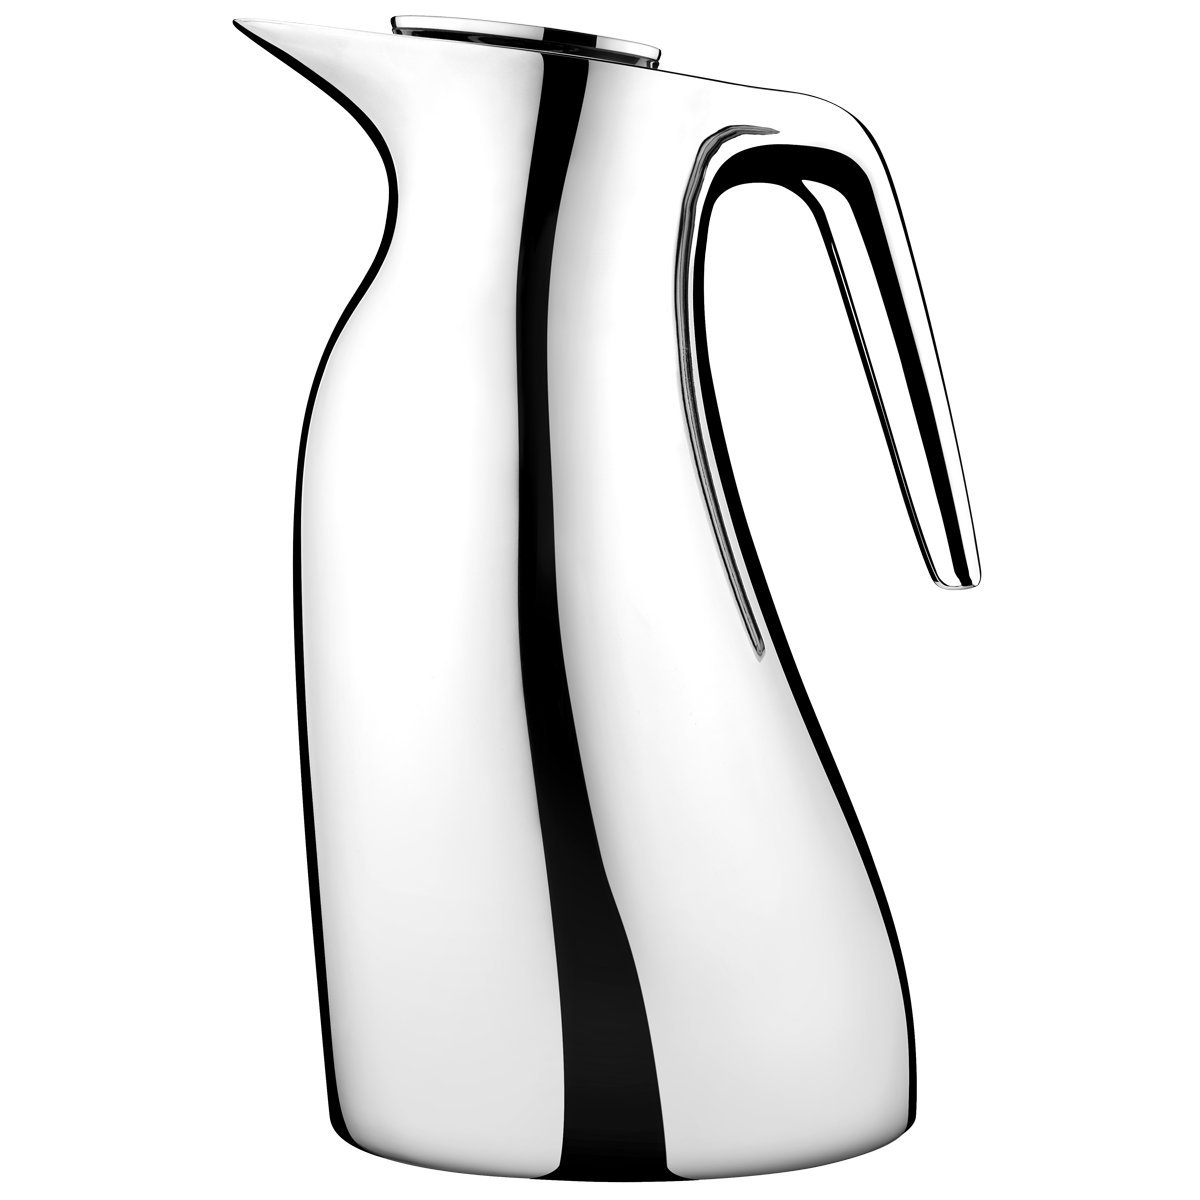 Georg Jensen BEAK Thermo jug 1 L by Georg Jensen (Image #1)